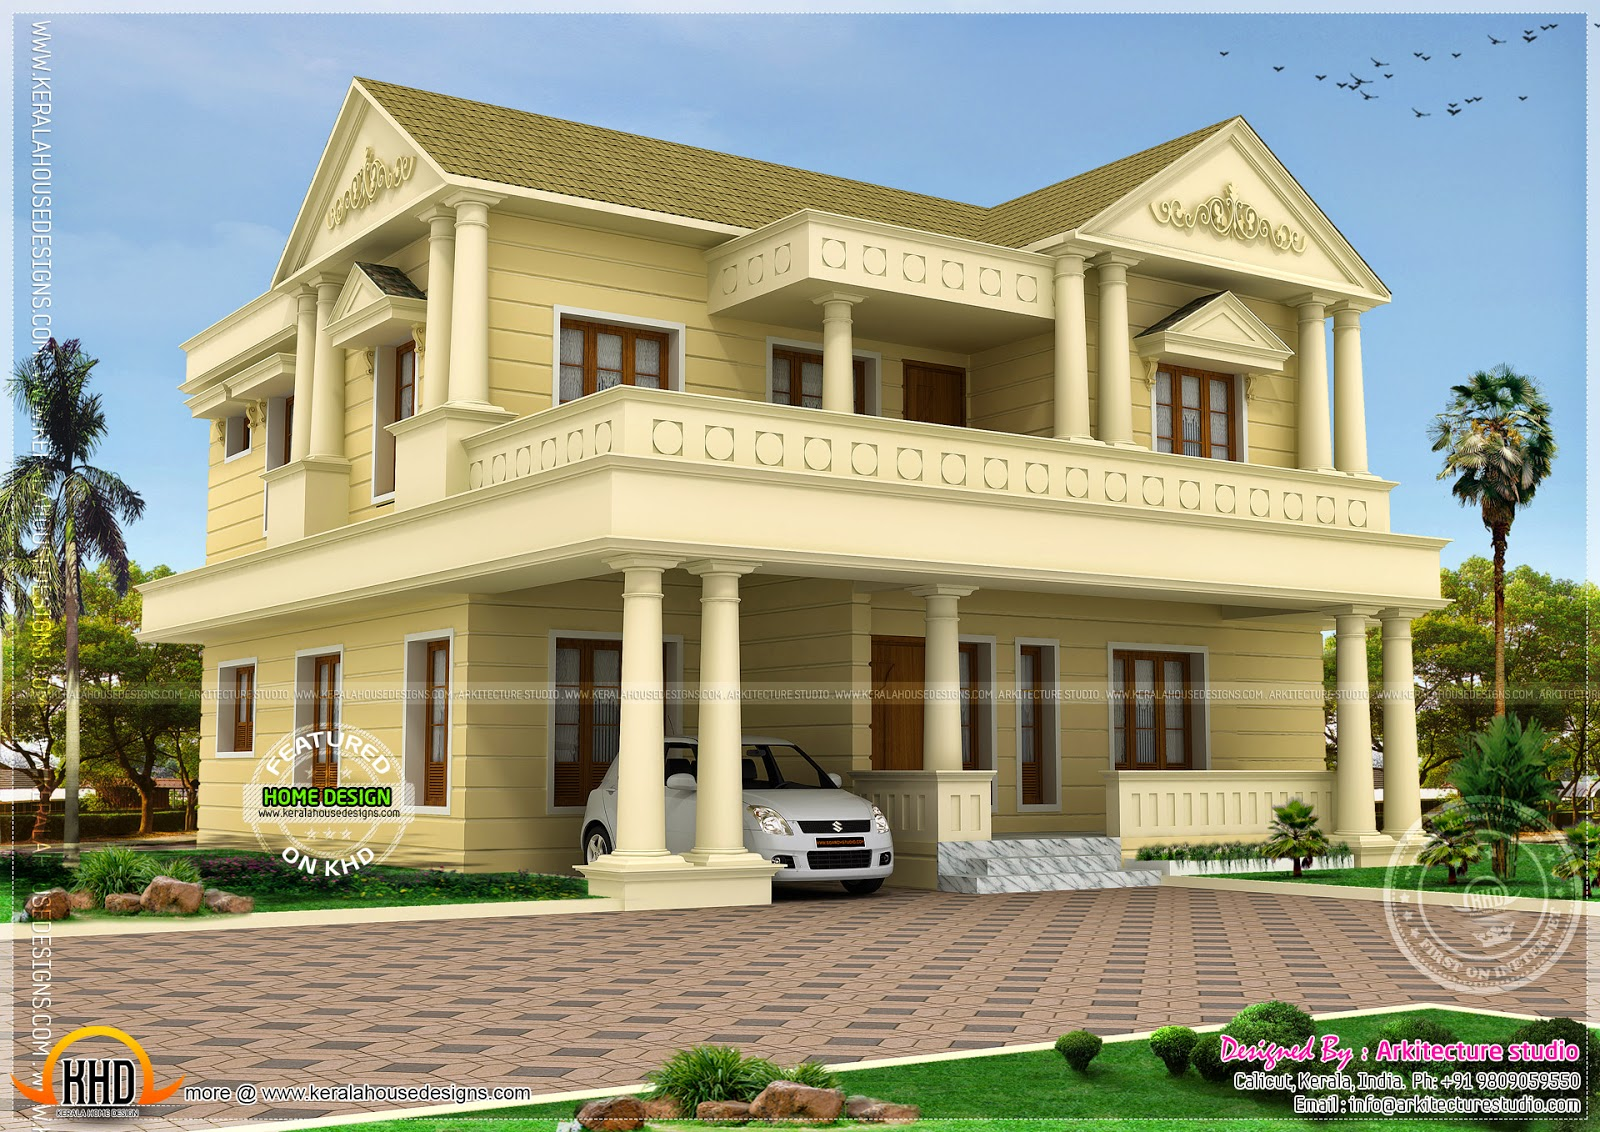 333 sq yd double storied house kerala home design and for 3000 sq ft house plans kerala style